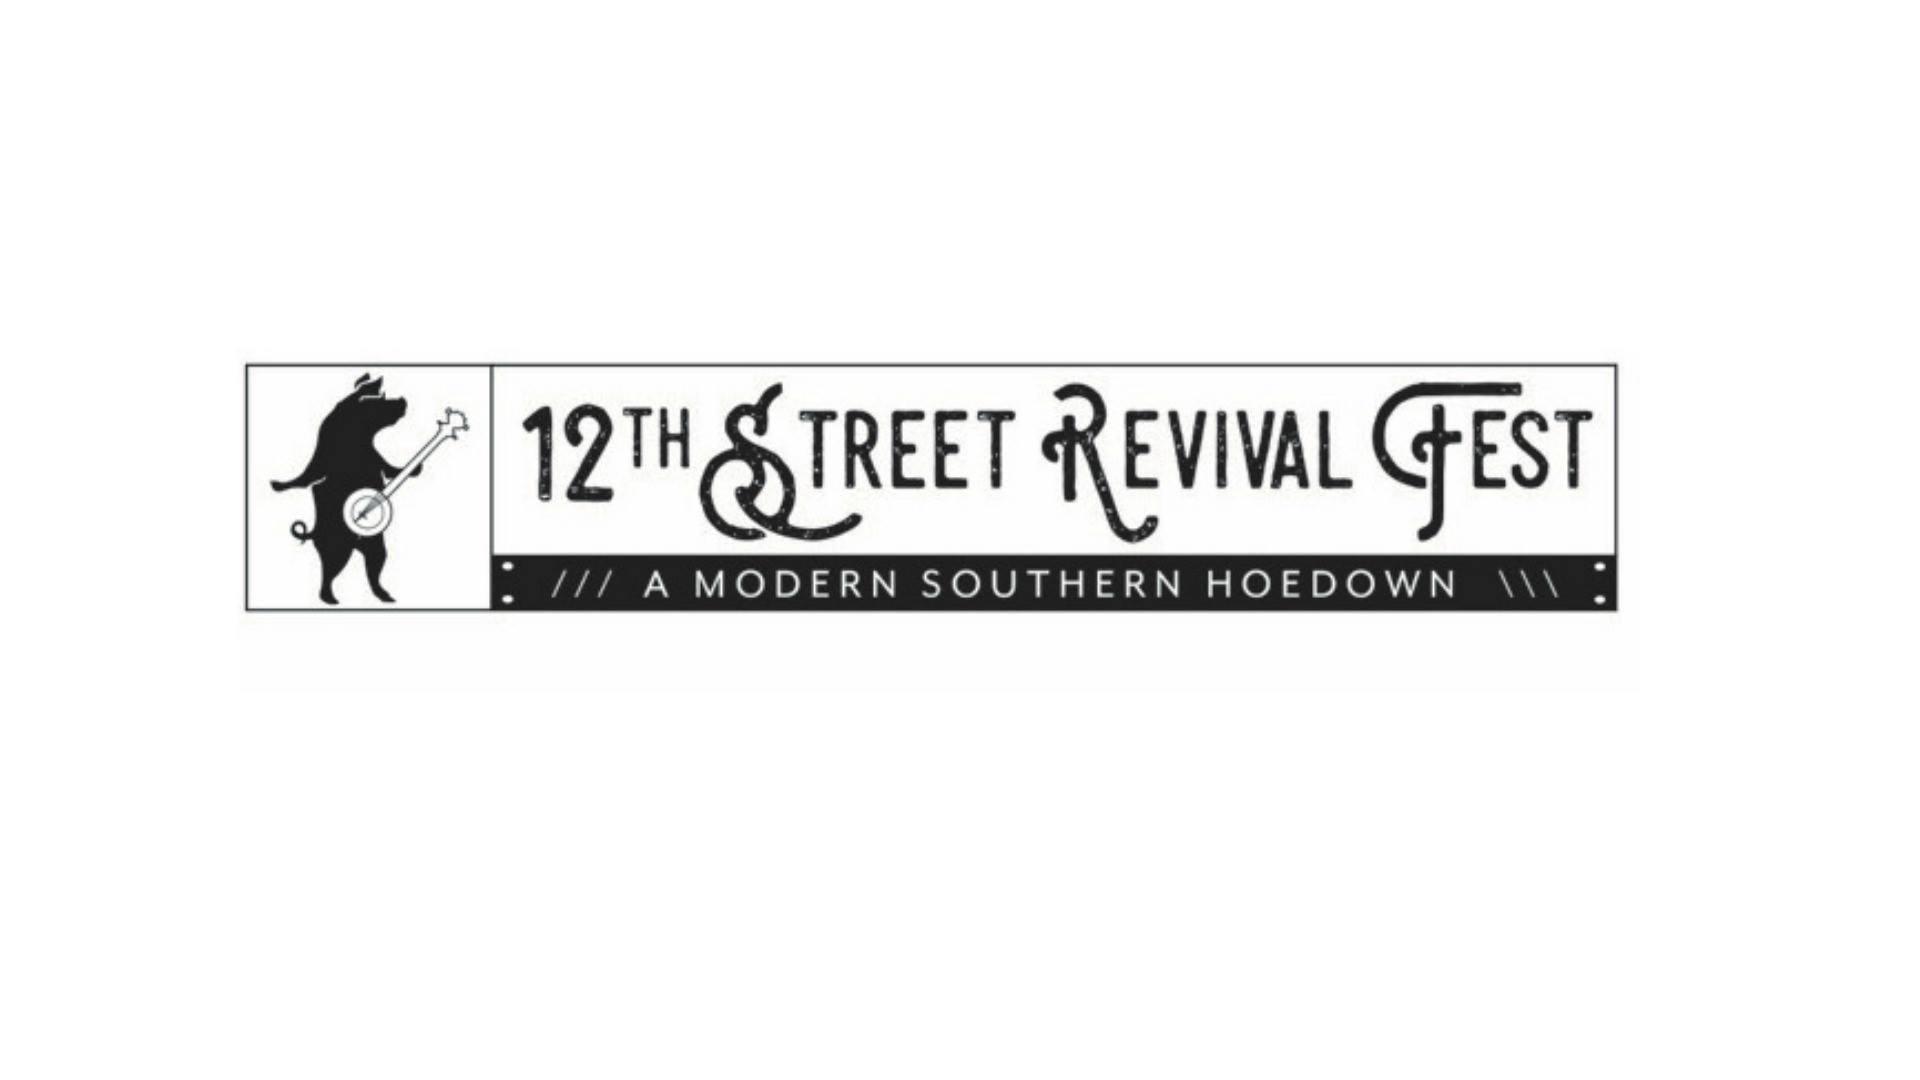 12th Street Revival Fest